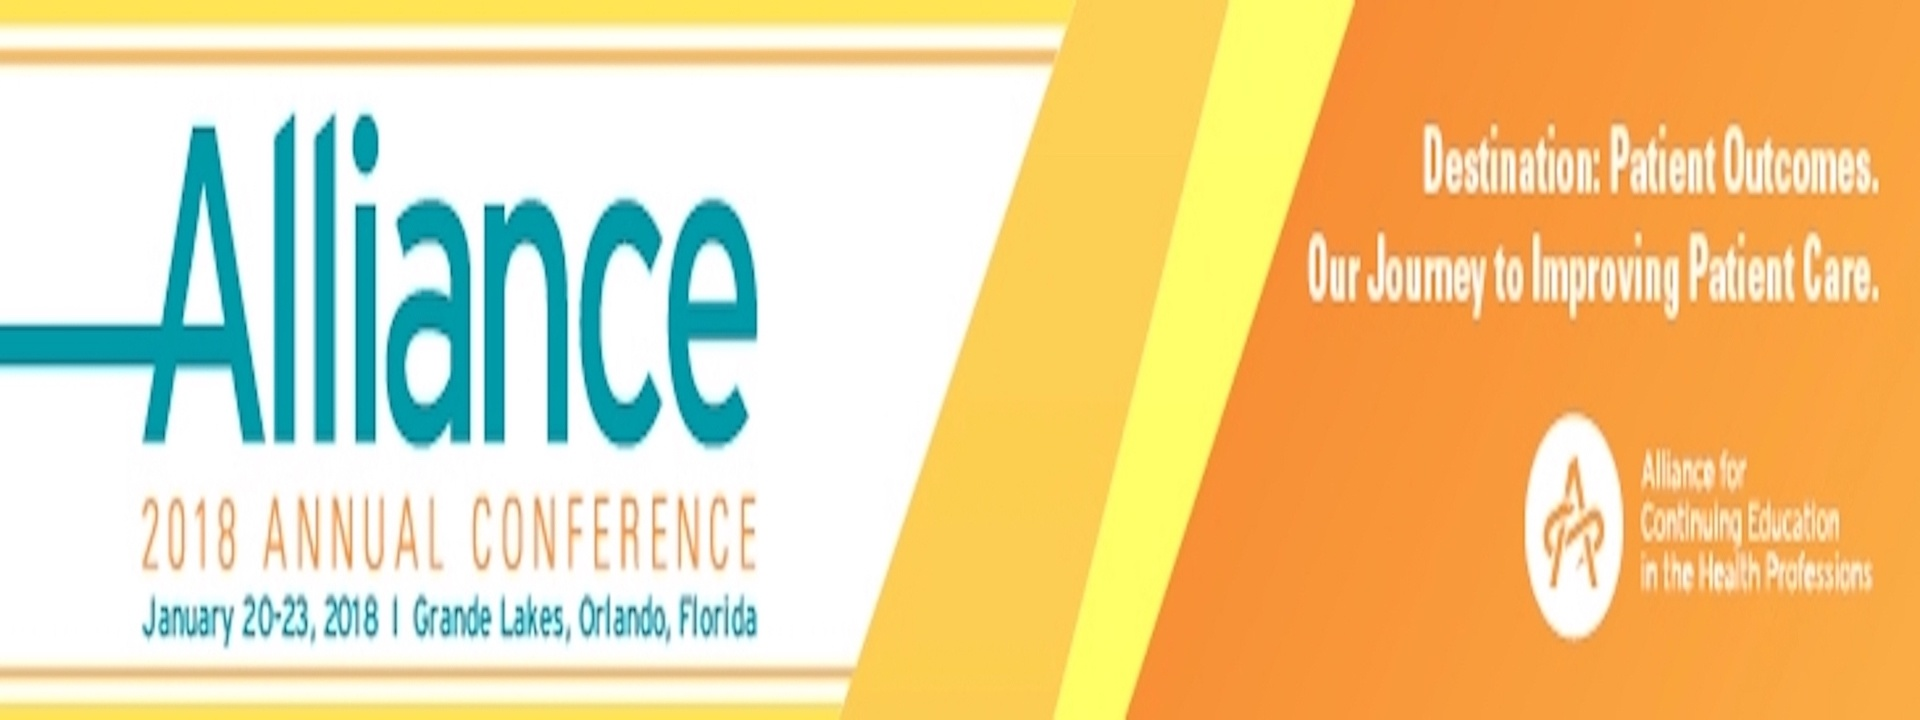 EM Technology @ Alliance 2018 Annual Conference